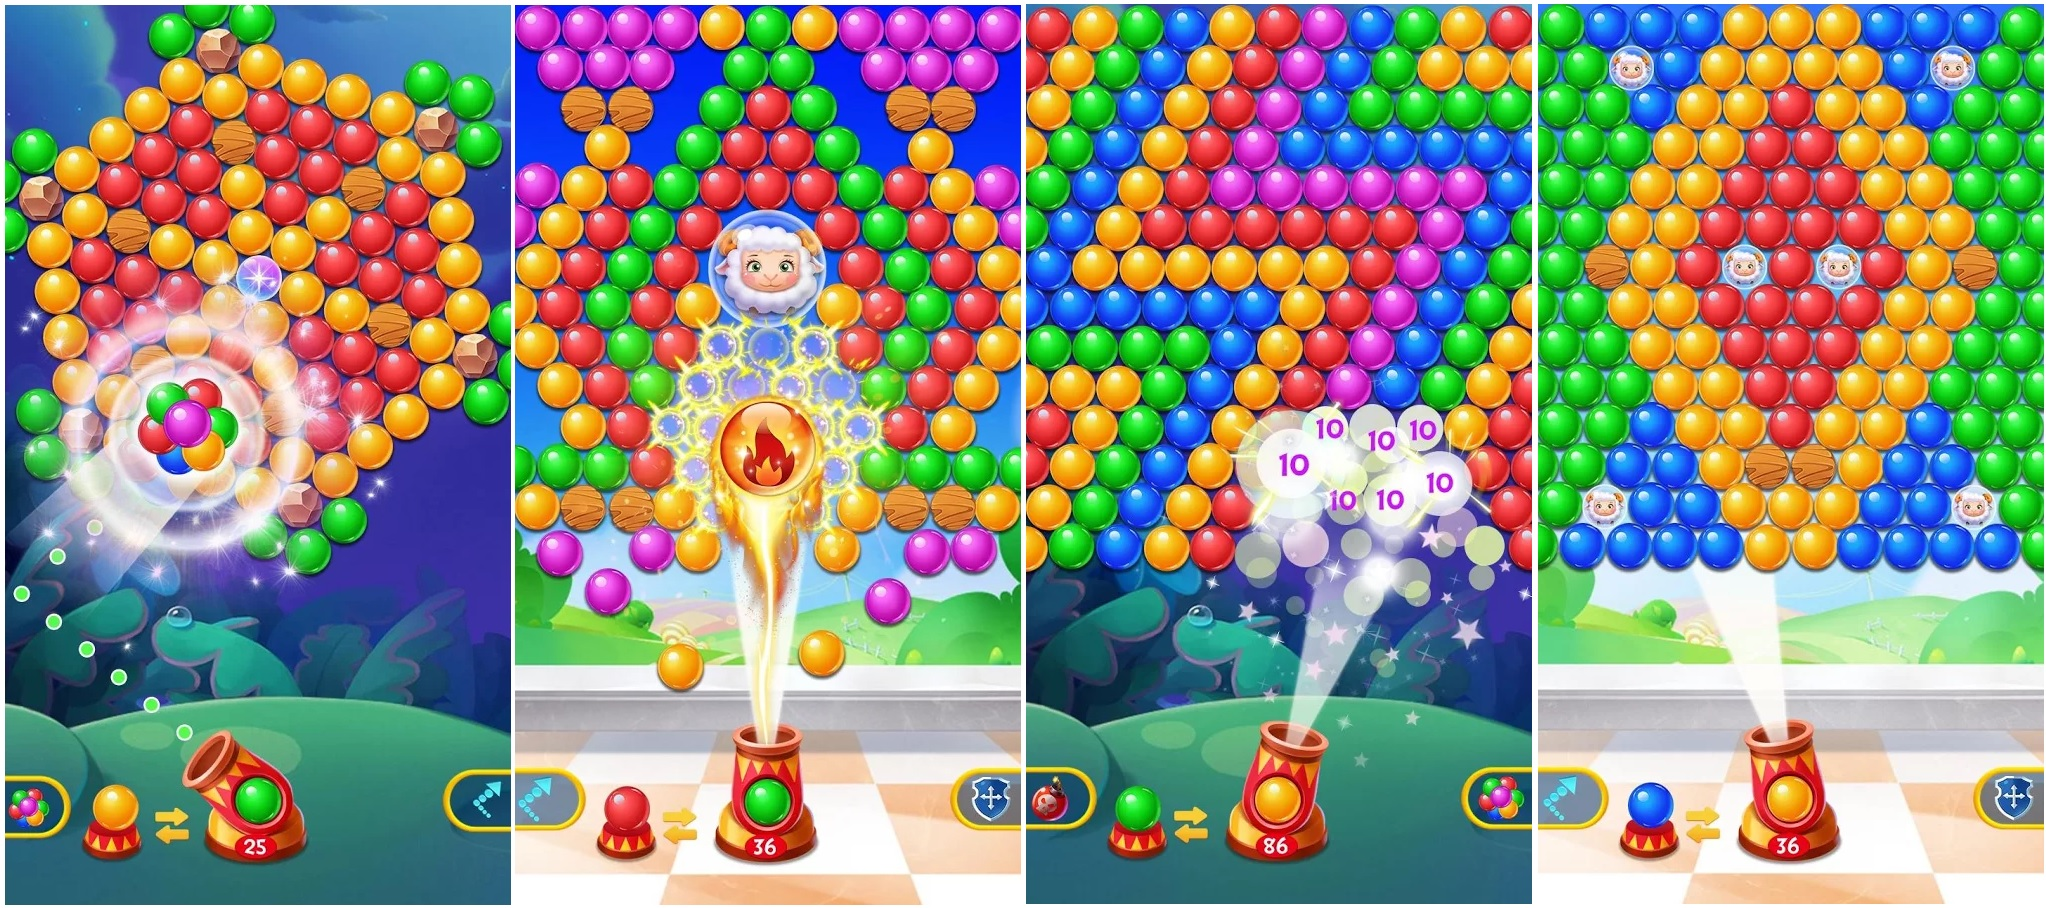 Bubble Games Have Lots Of Fun With New Bubble Shooter Game Bubble Games